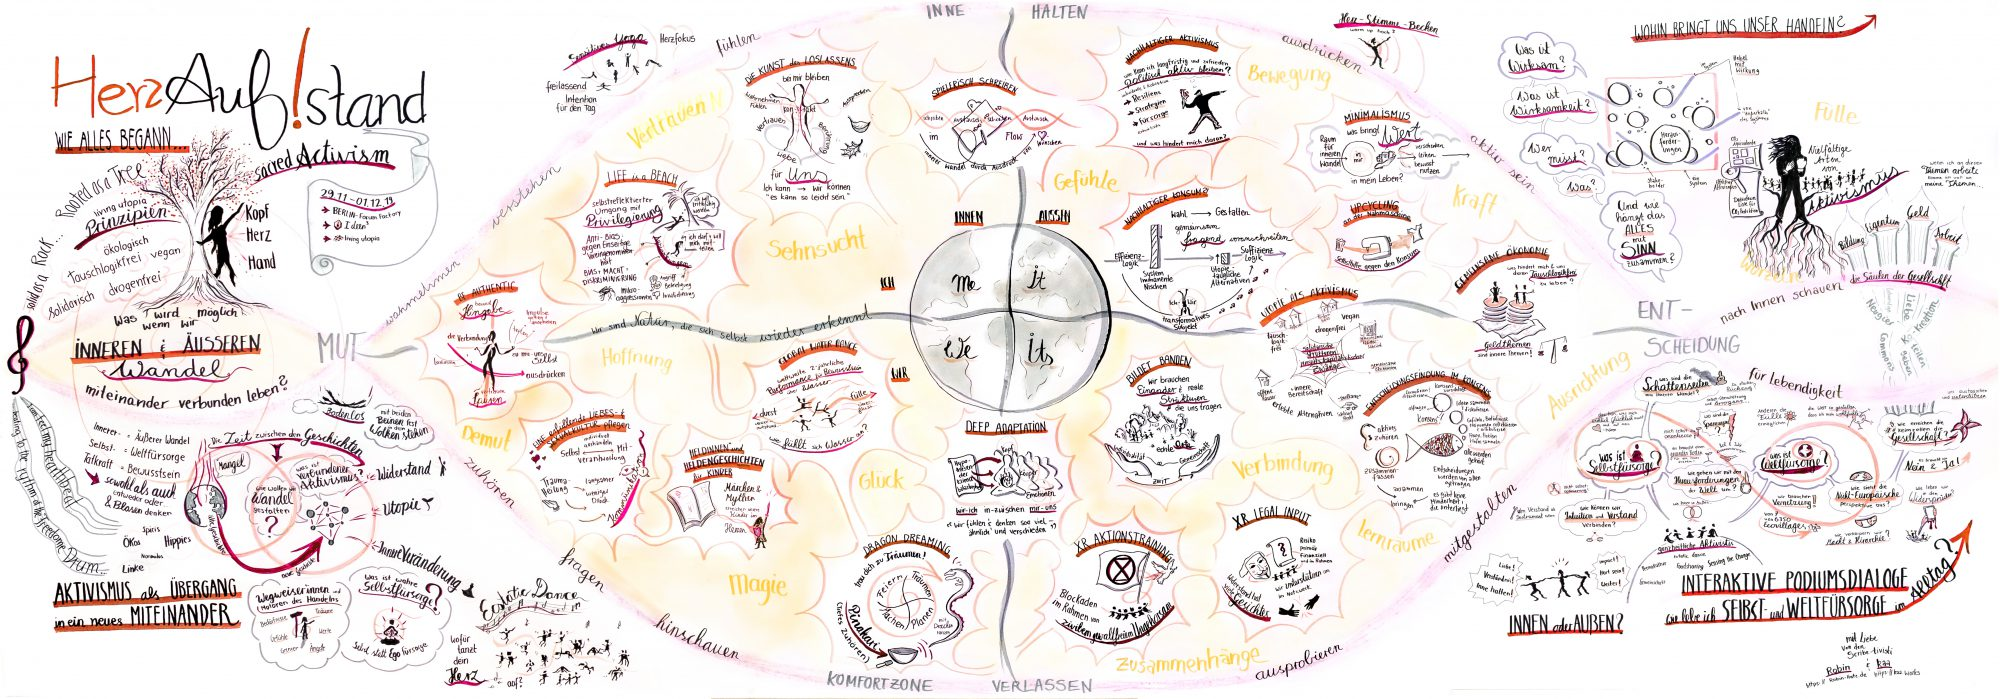 Graphic Recording - Herzaufstand